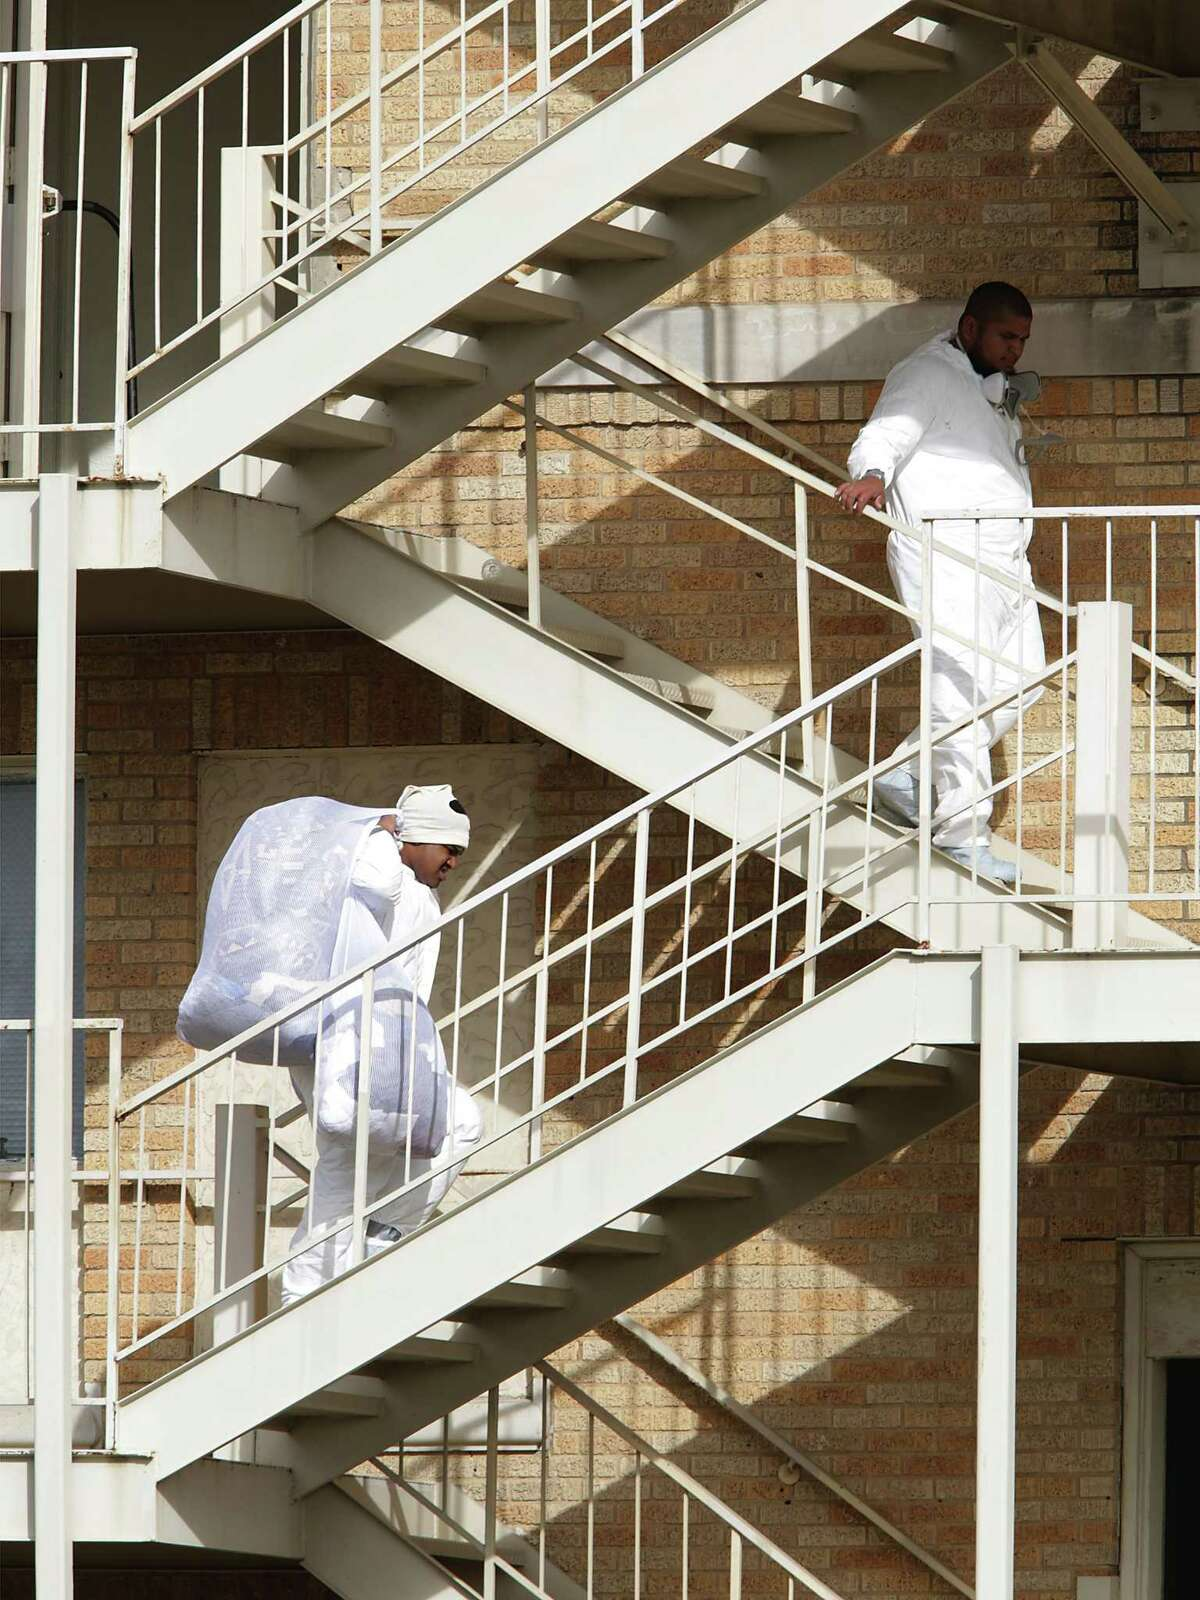 Workers dressed in white protective suits carry bags of linens and clothing, cleaned for bedbugs, back up to a fumigated floor of the Aurora Apartments on March 2, 2017. The historic apartment building is being fumigated for infestations of roaches and bed bugs.